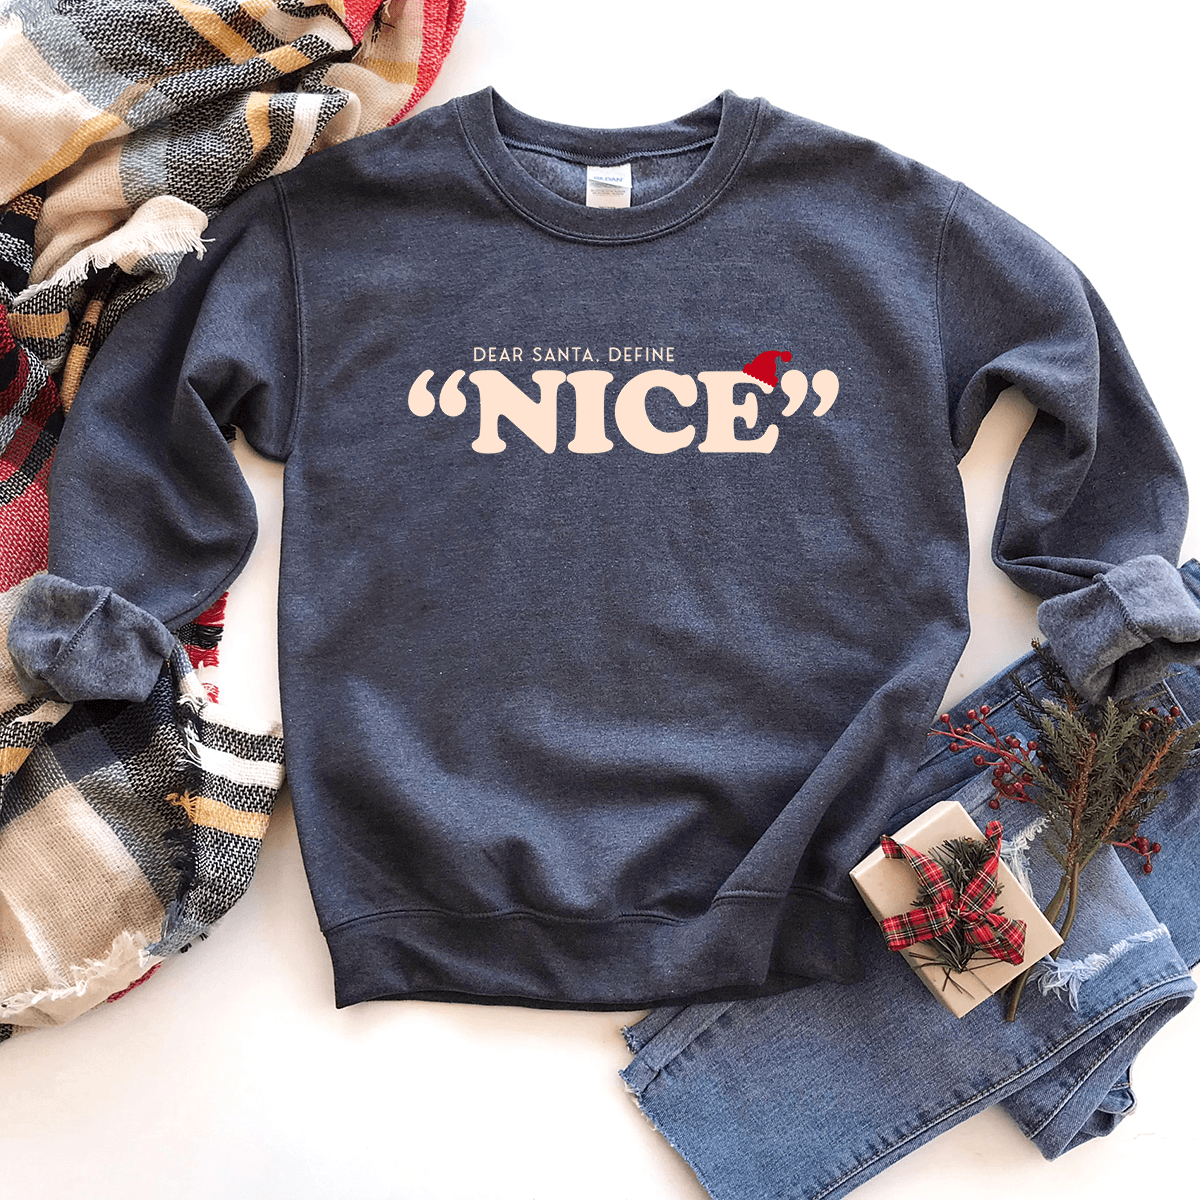 "Dear Santa, Define ""Nice"" - Sweatshirt"